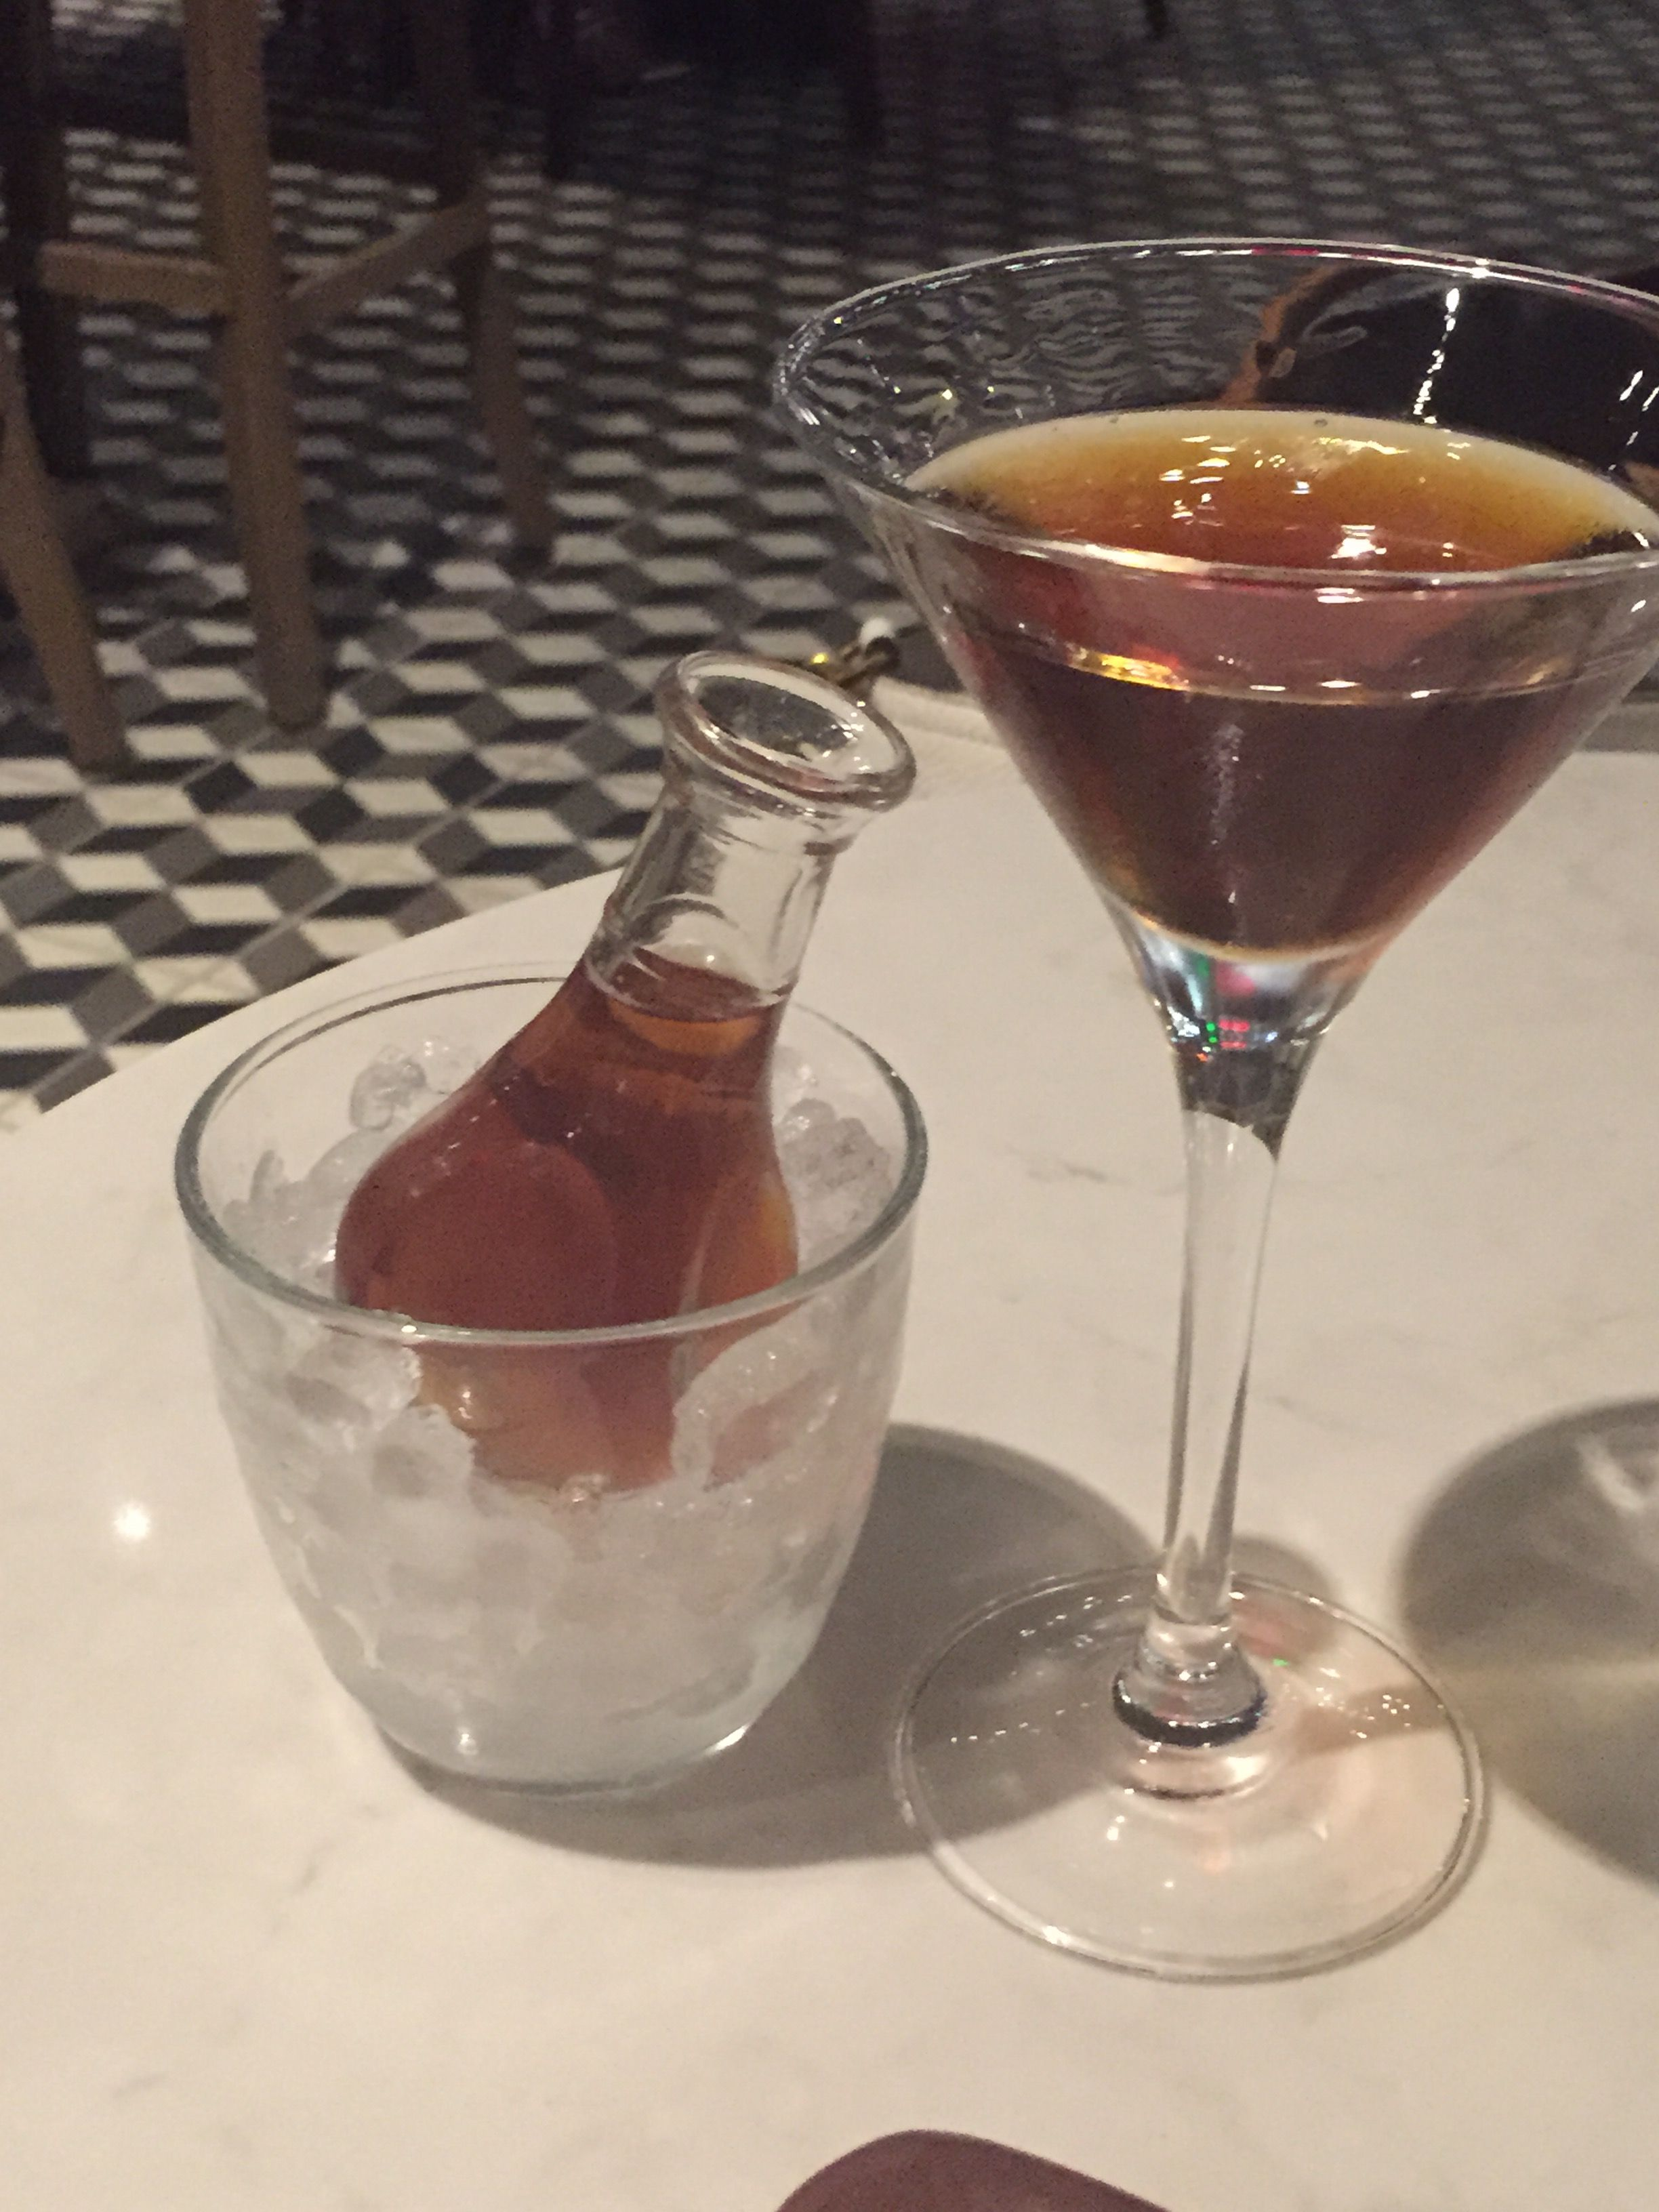 ALLSPICE rye whiskey, eight year aged rum, sweet vermouth, herbal liqueur, bitters ~ BDK SF